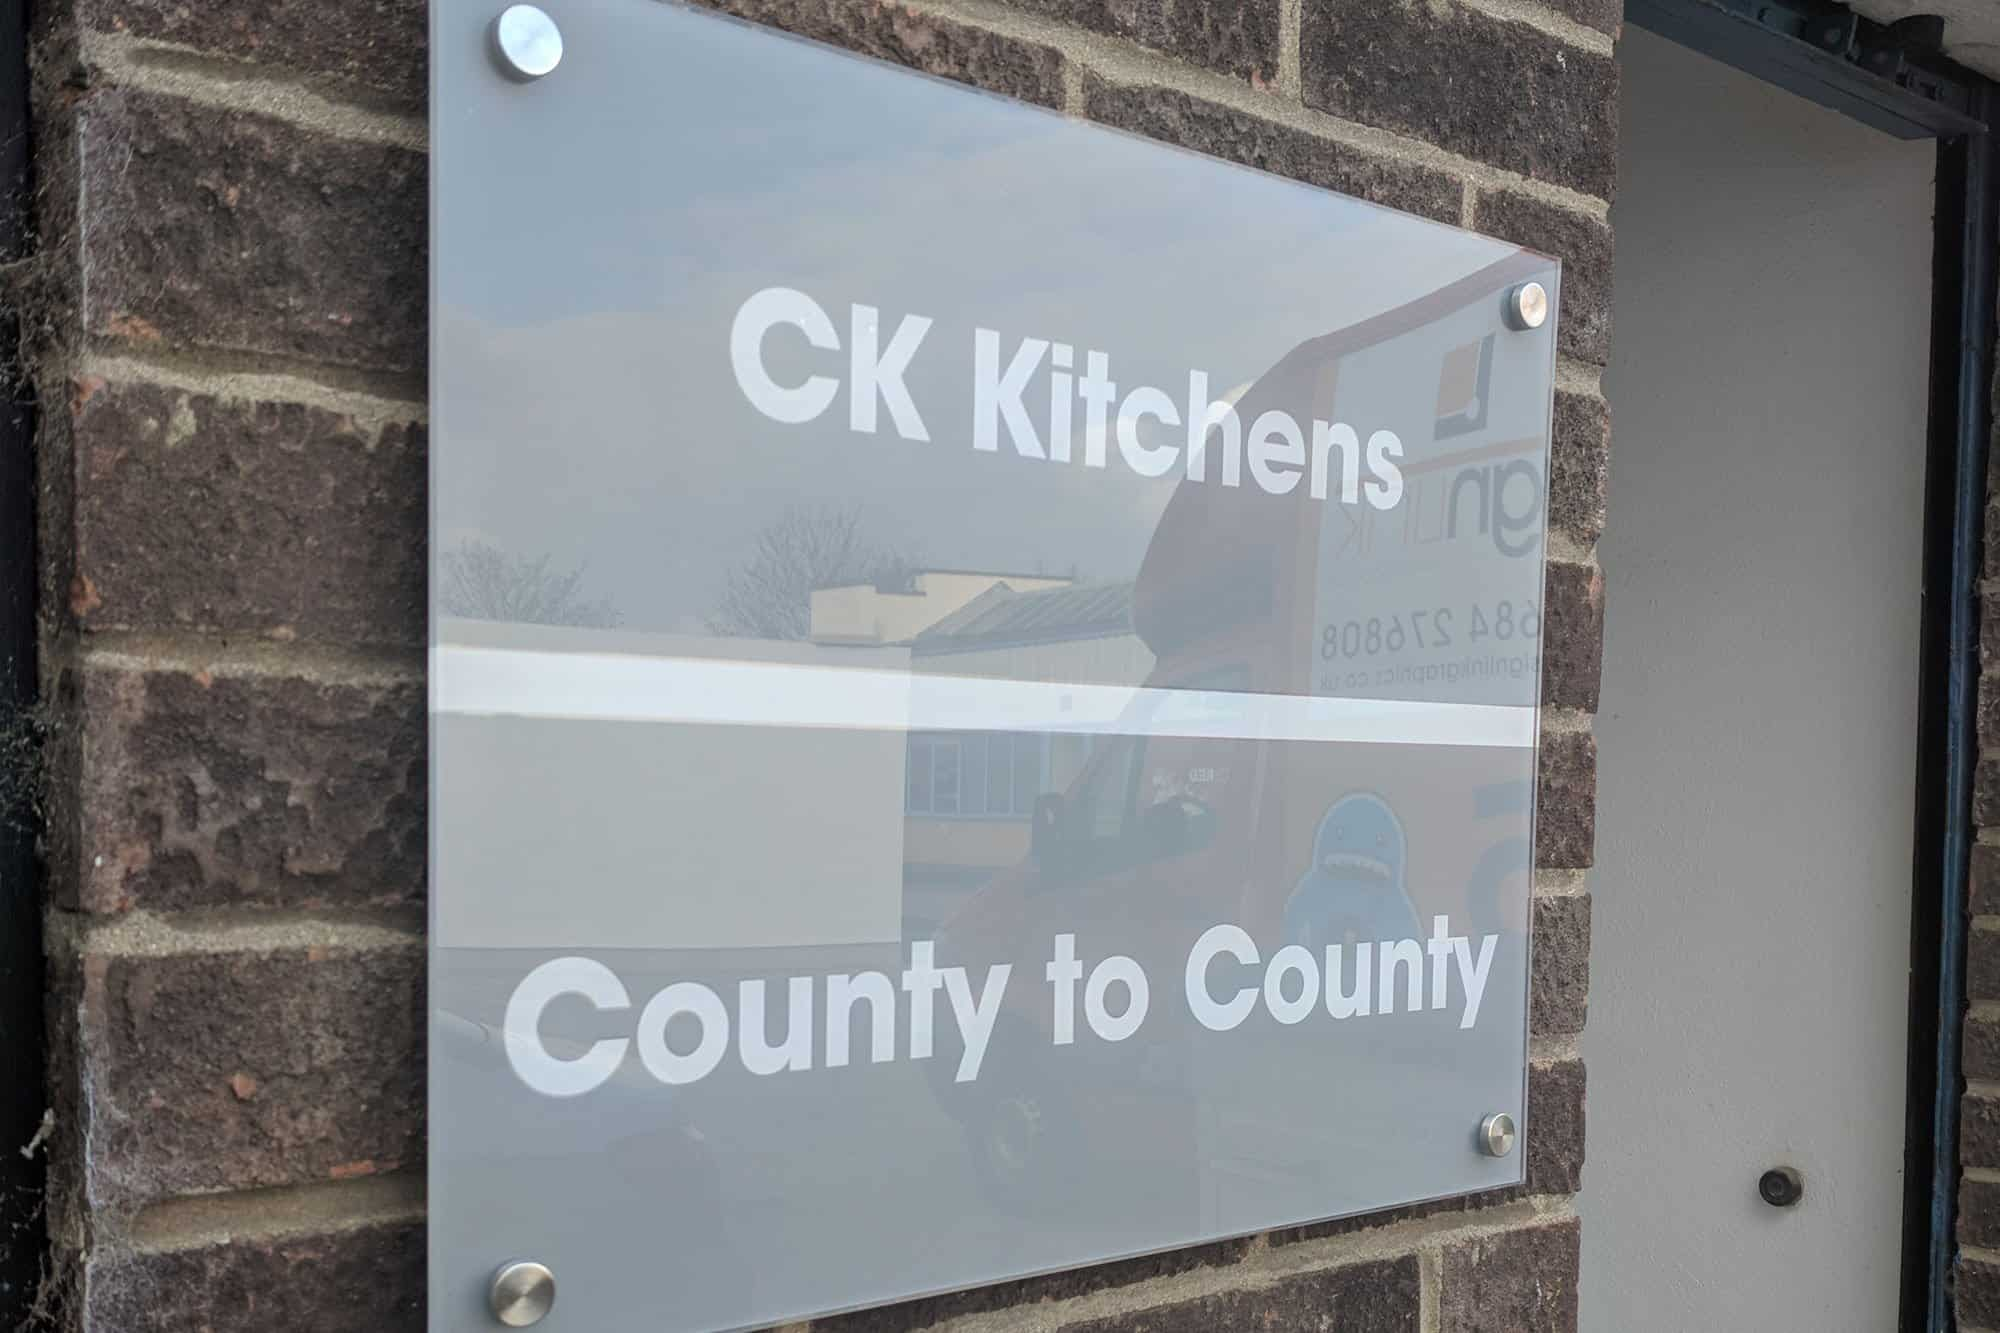 County to County Office Signs